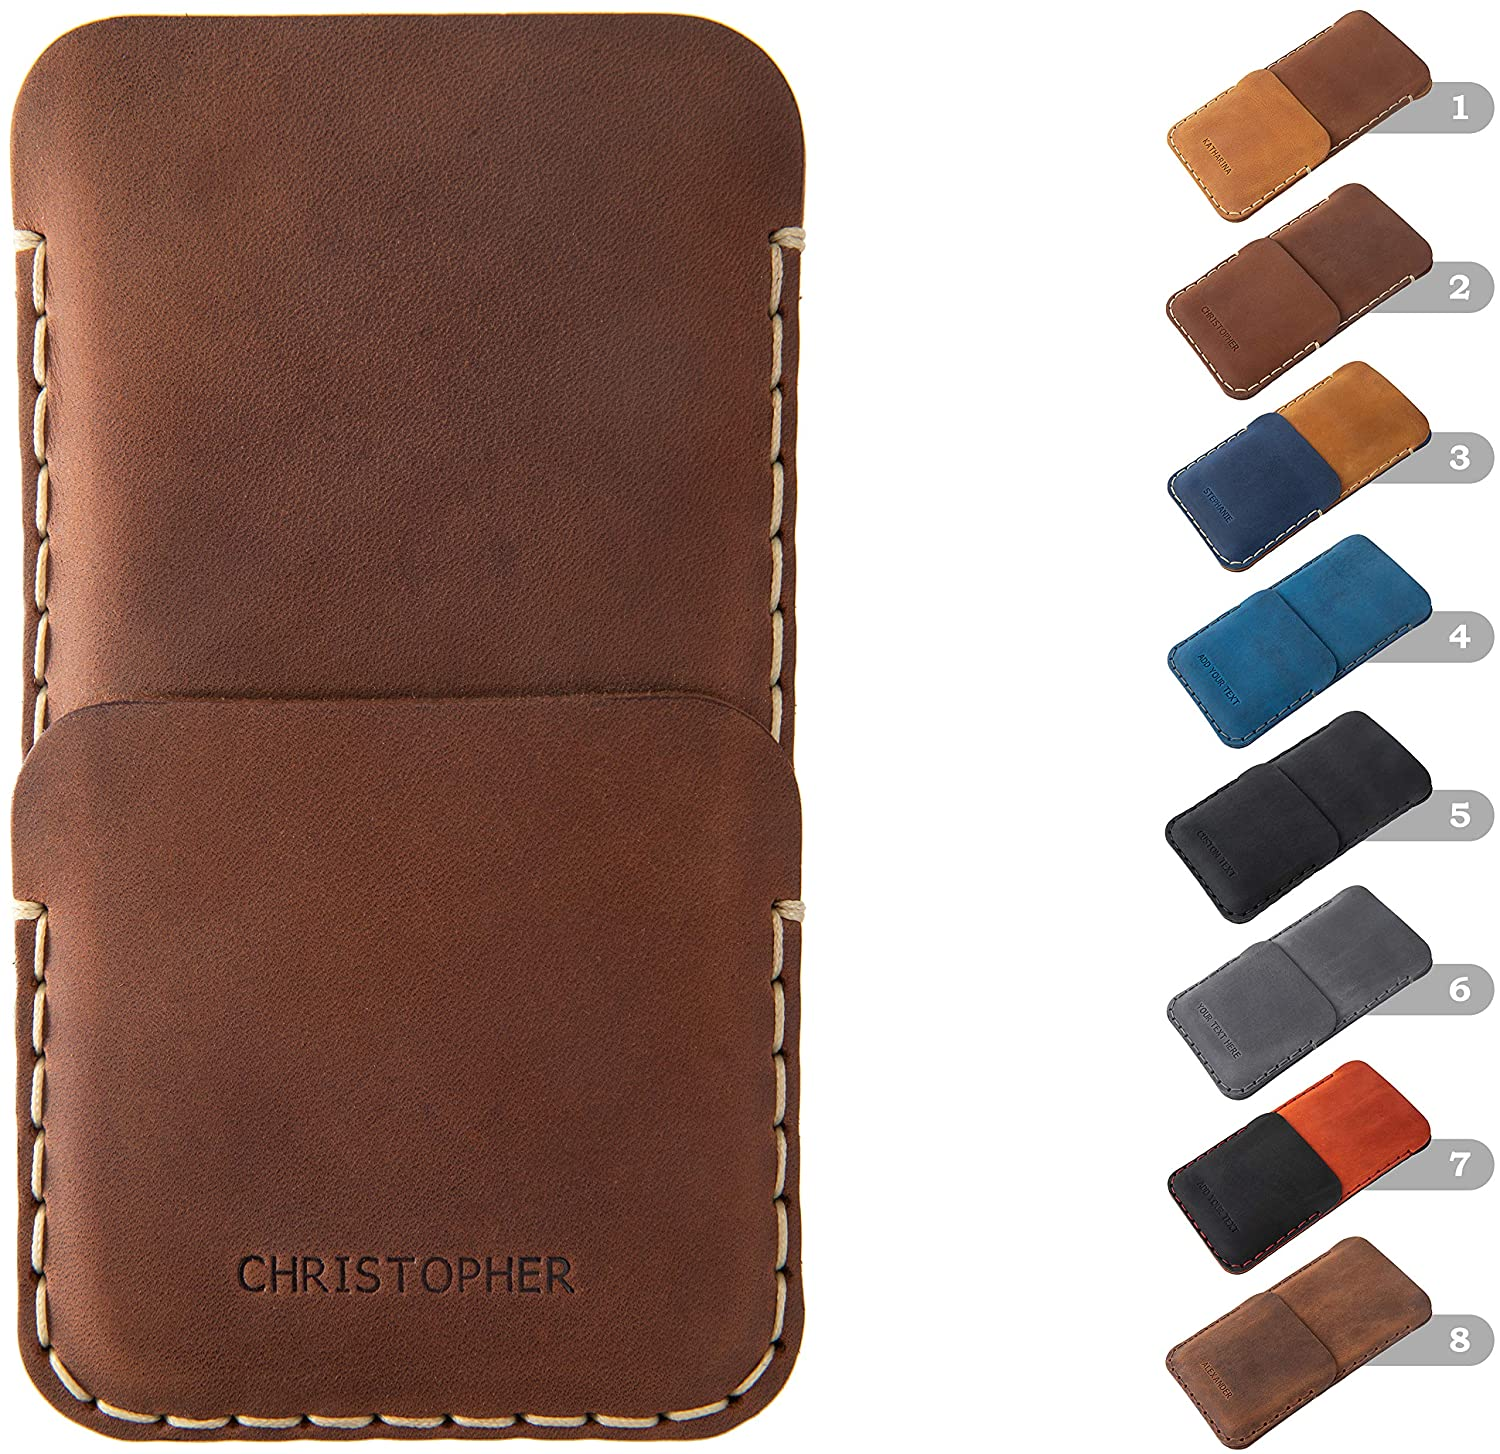 Limited Special Price Personalized Leather Cover works with Cat Max 68% OFF Case S41 Walle S31 S60